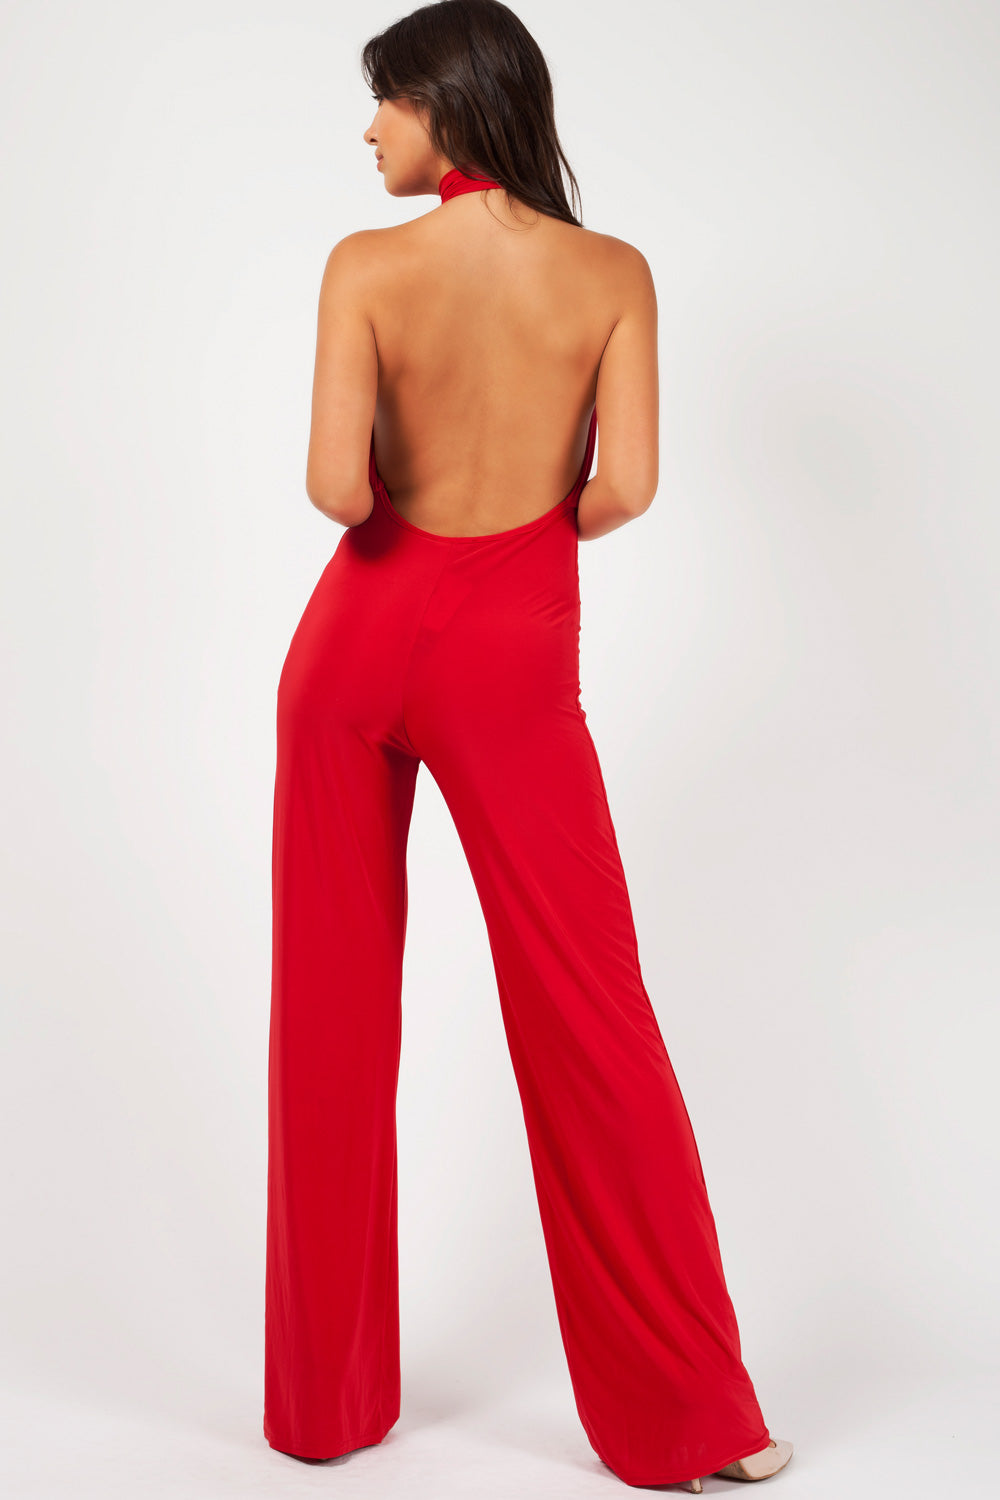 uk size 6 jumpsuit red